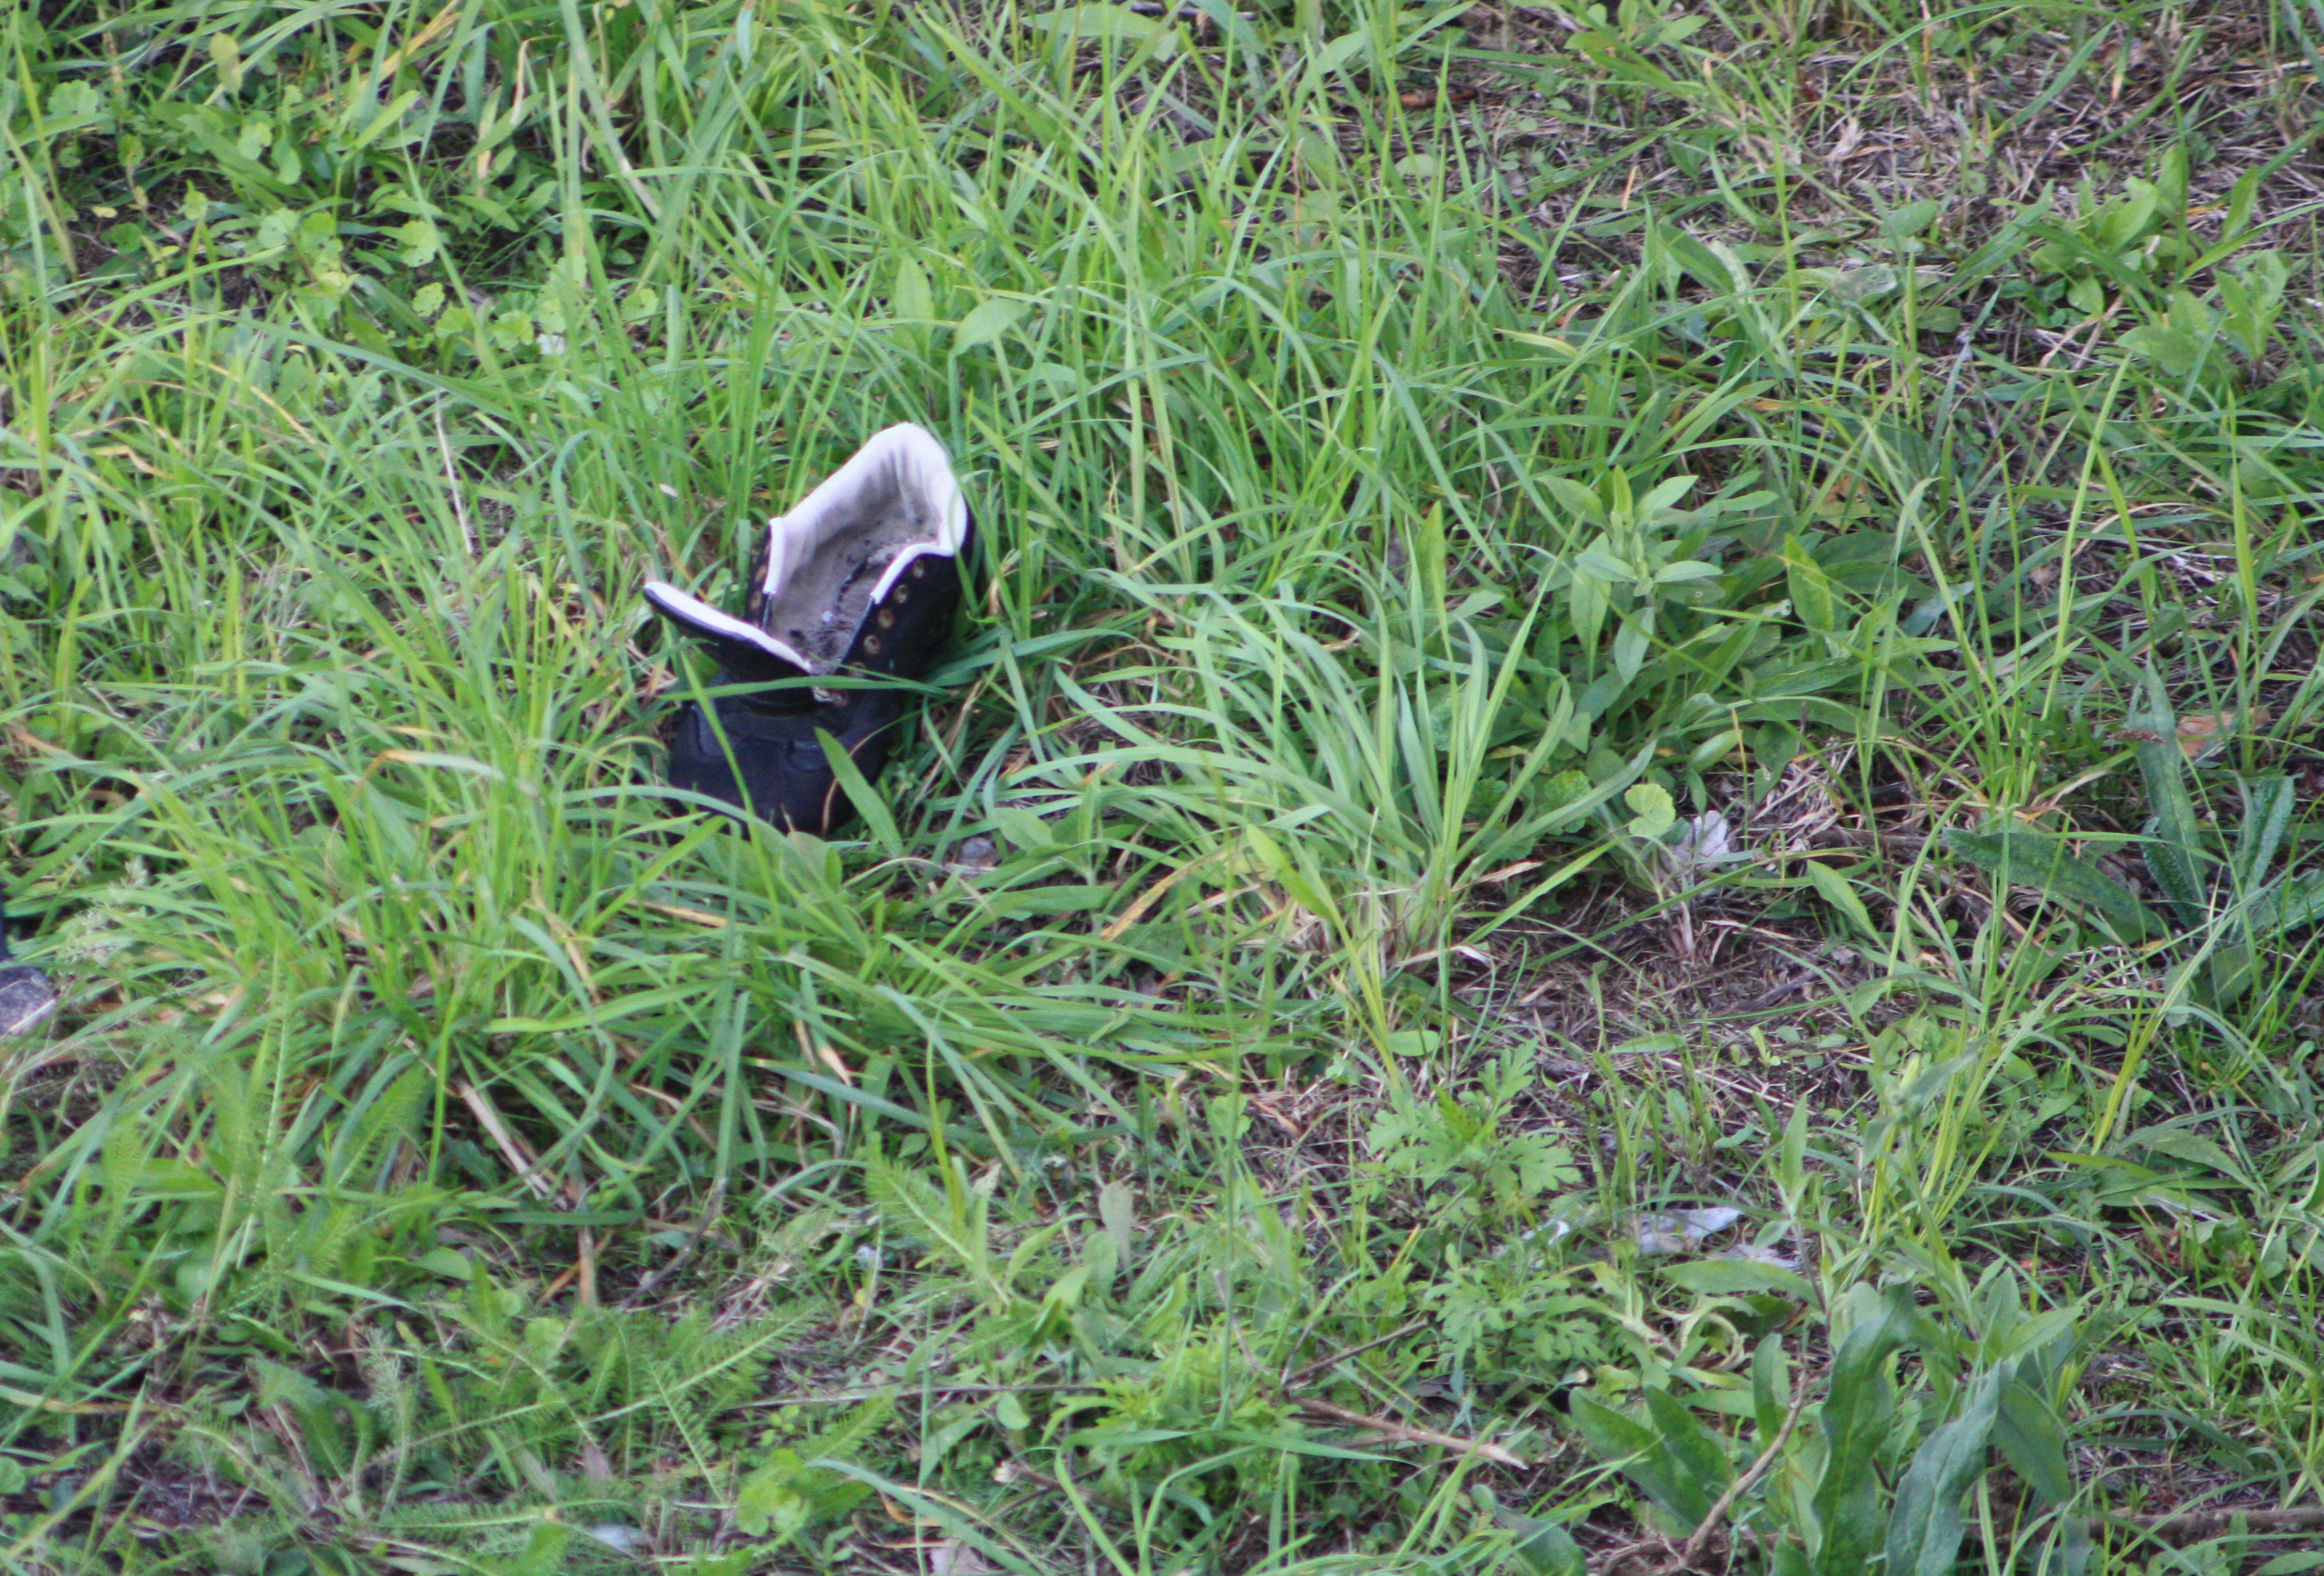 Abandoned Shoe, Old, Shoe, Grass, Alone, HQ Photo